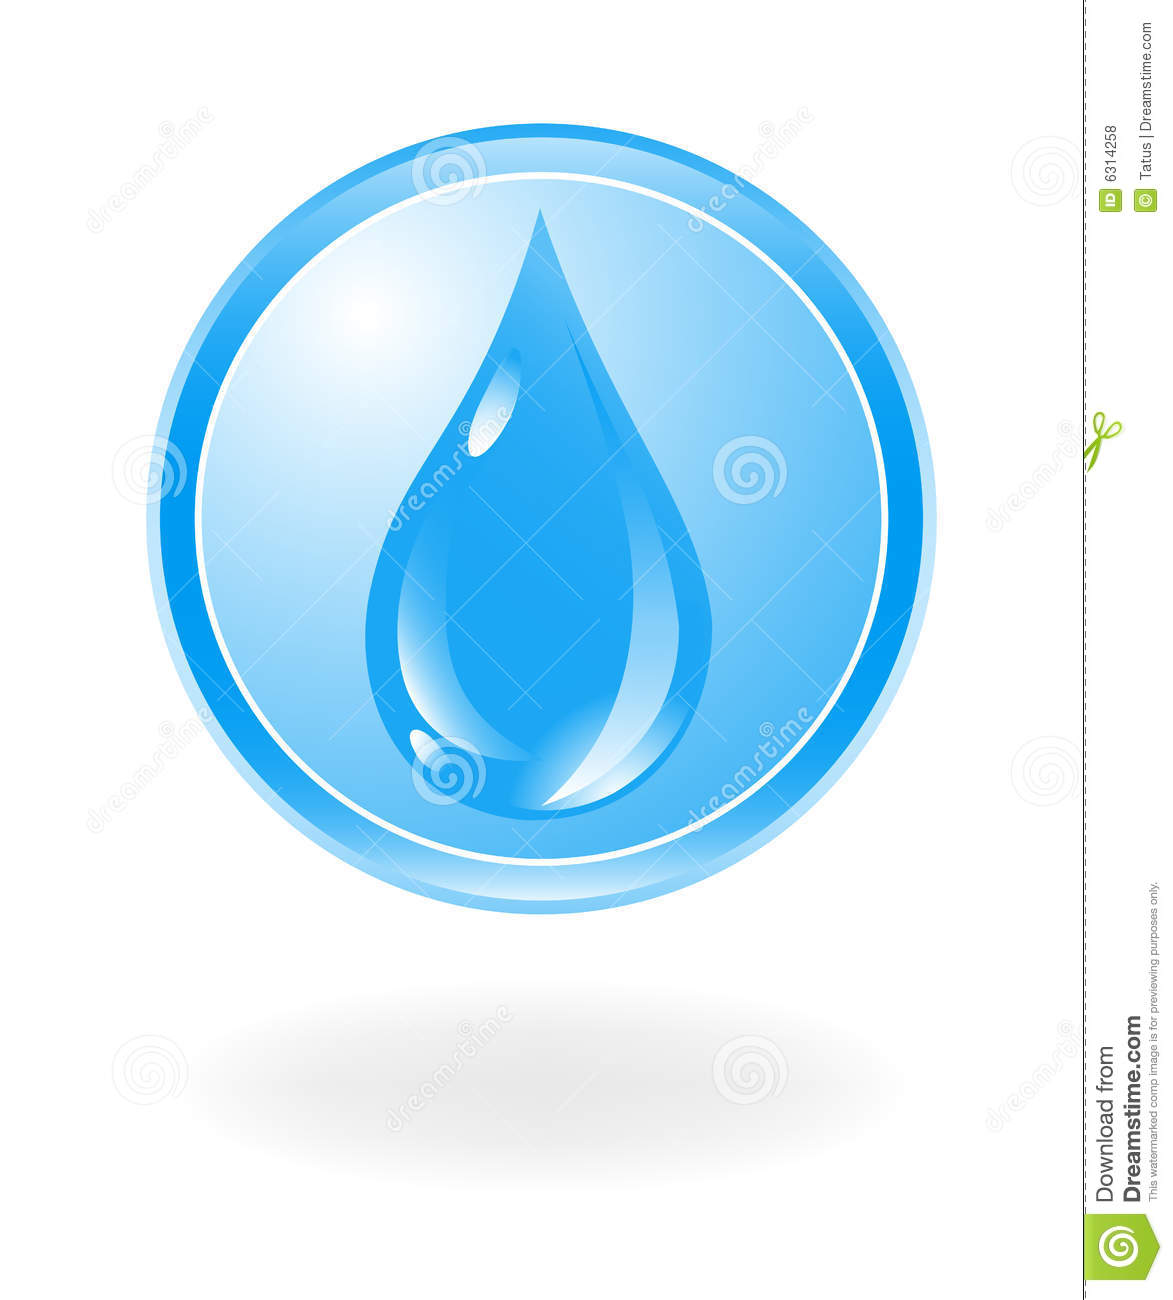 Water Symbol Royalty Free Stock Photos - Image: 6314258